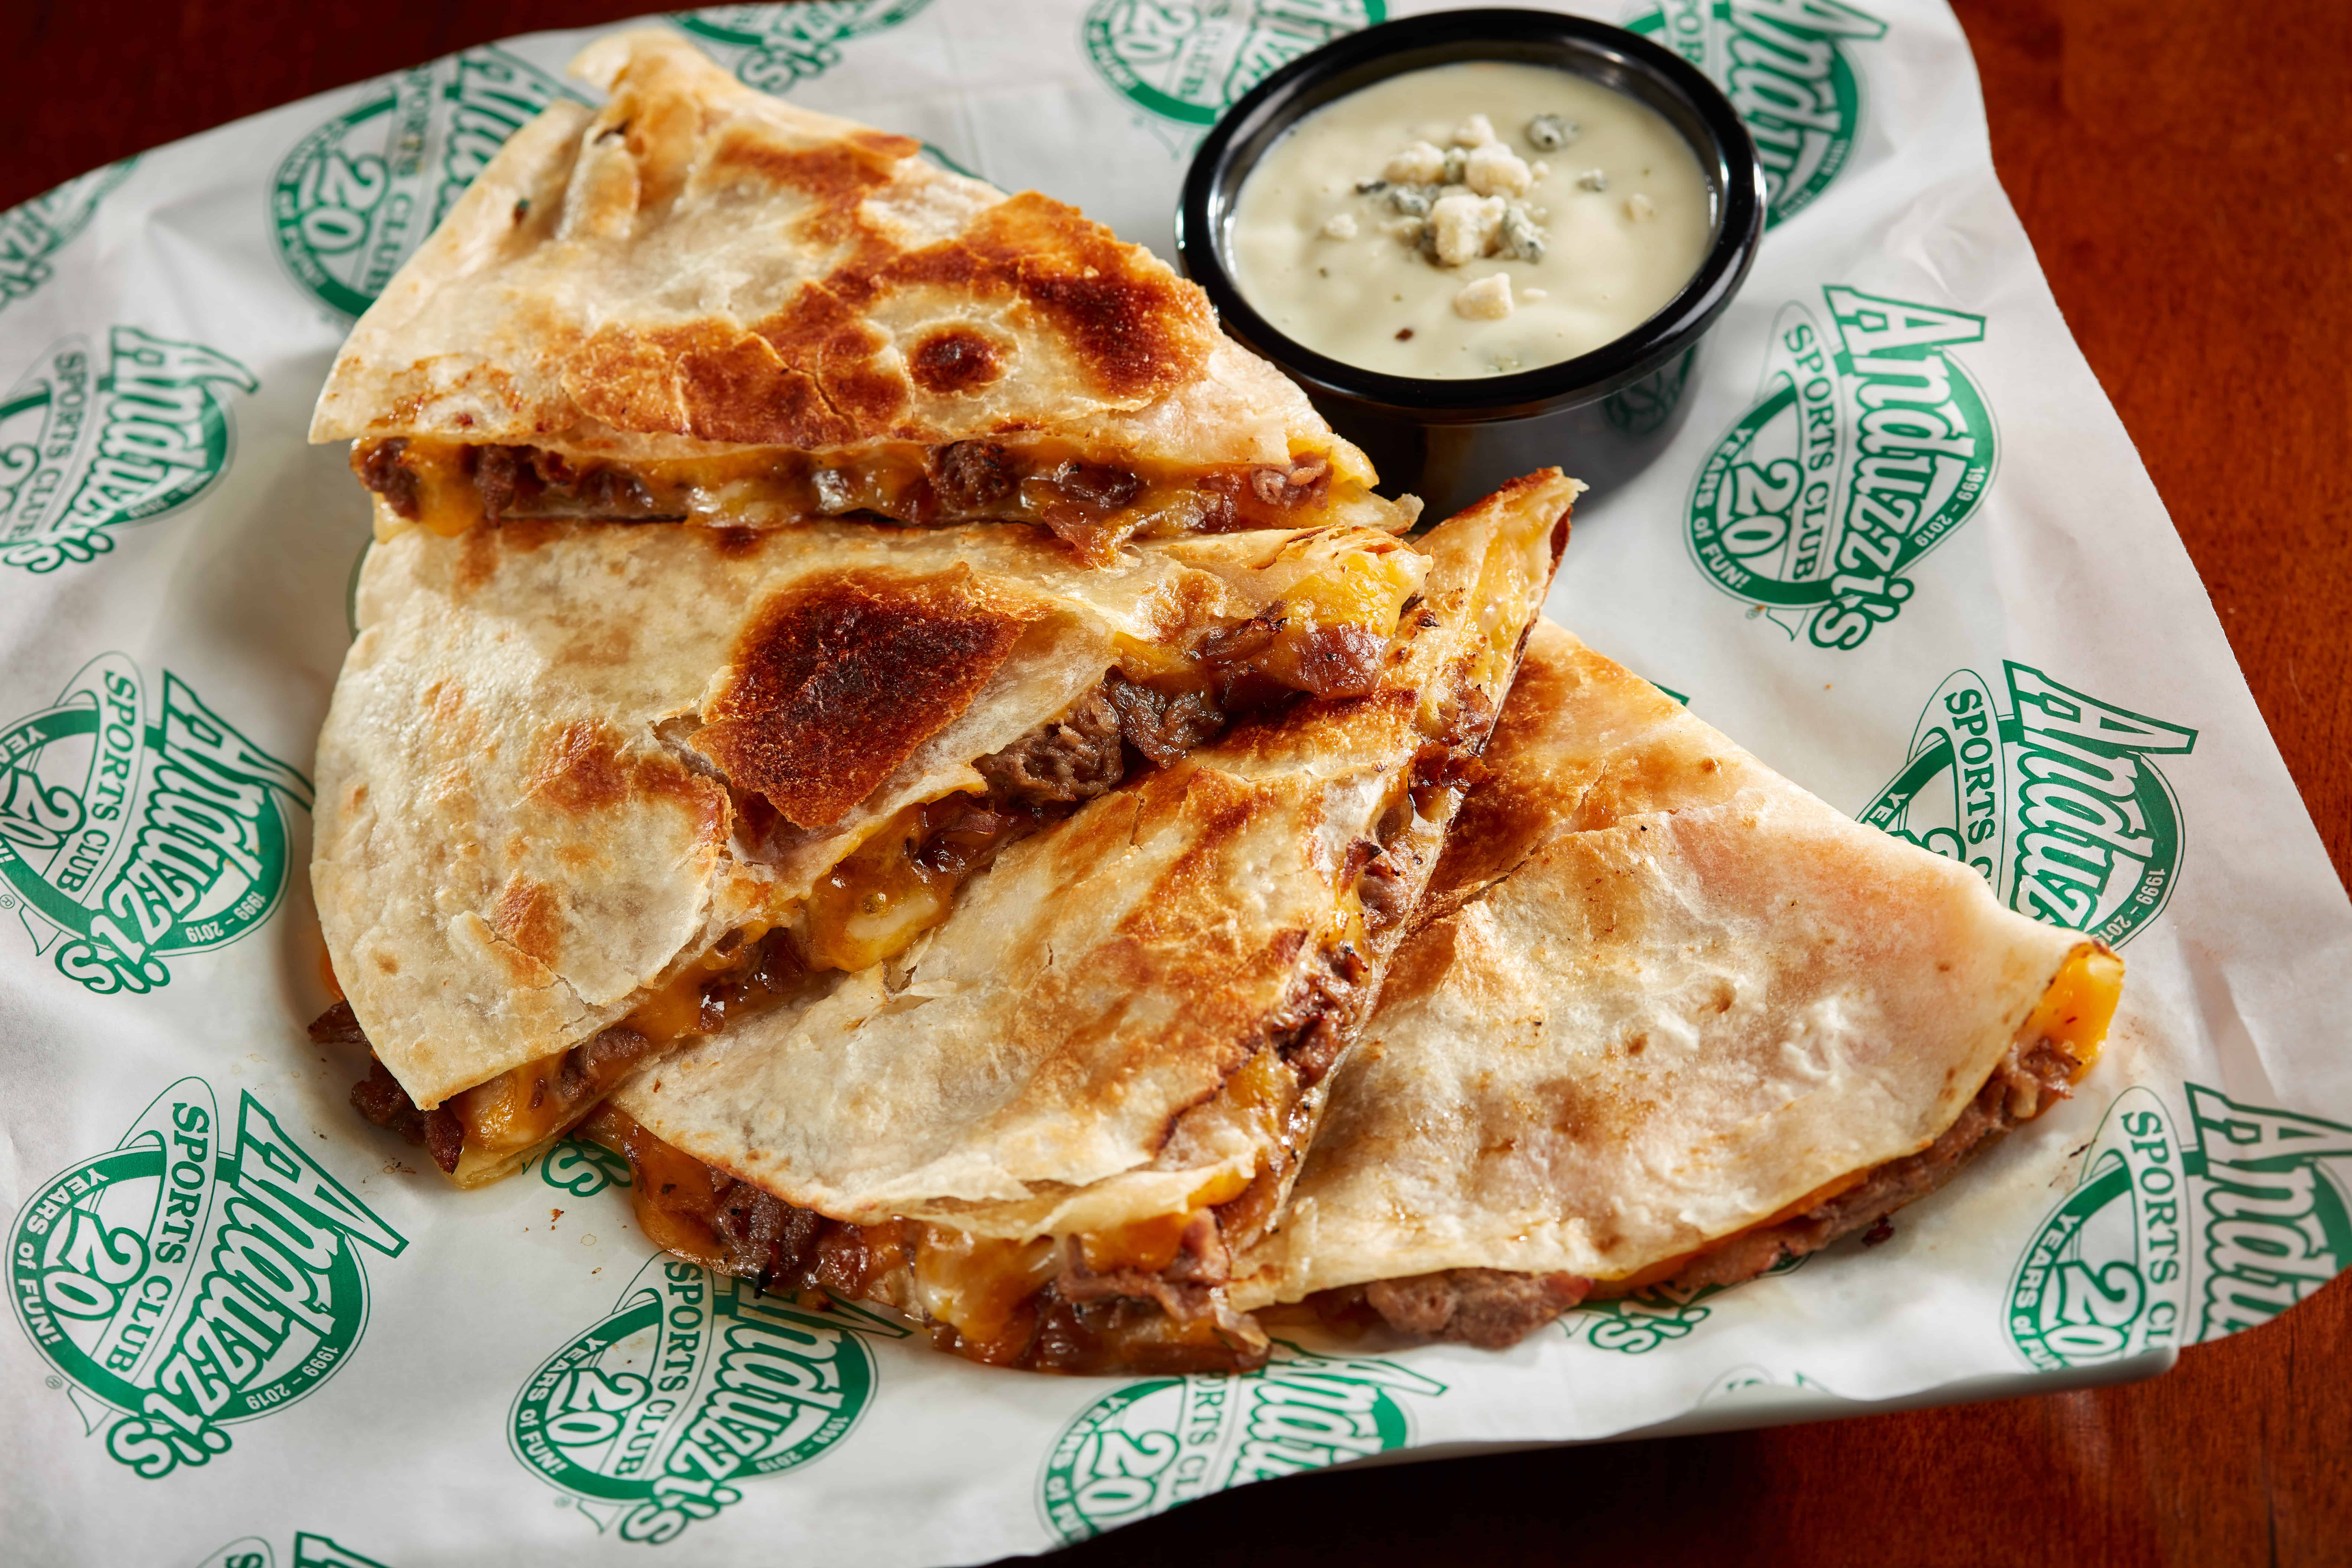 Steak Quesadilla Bonus 3 - Chicken Bacon Ranch Quesadilla